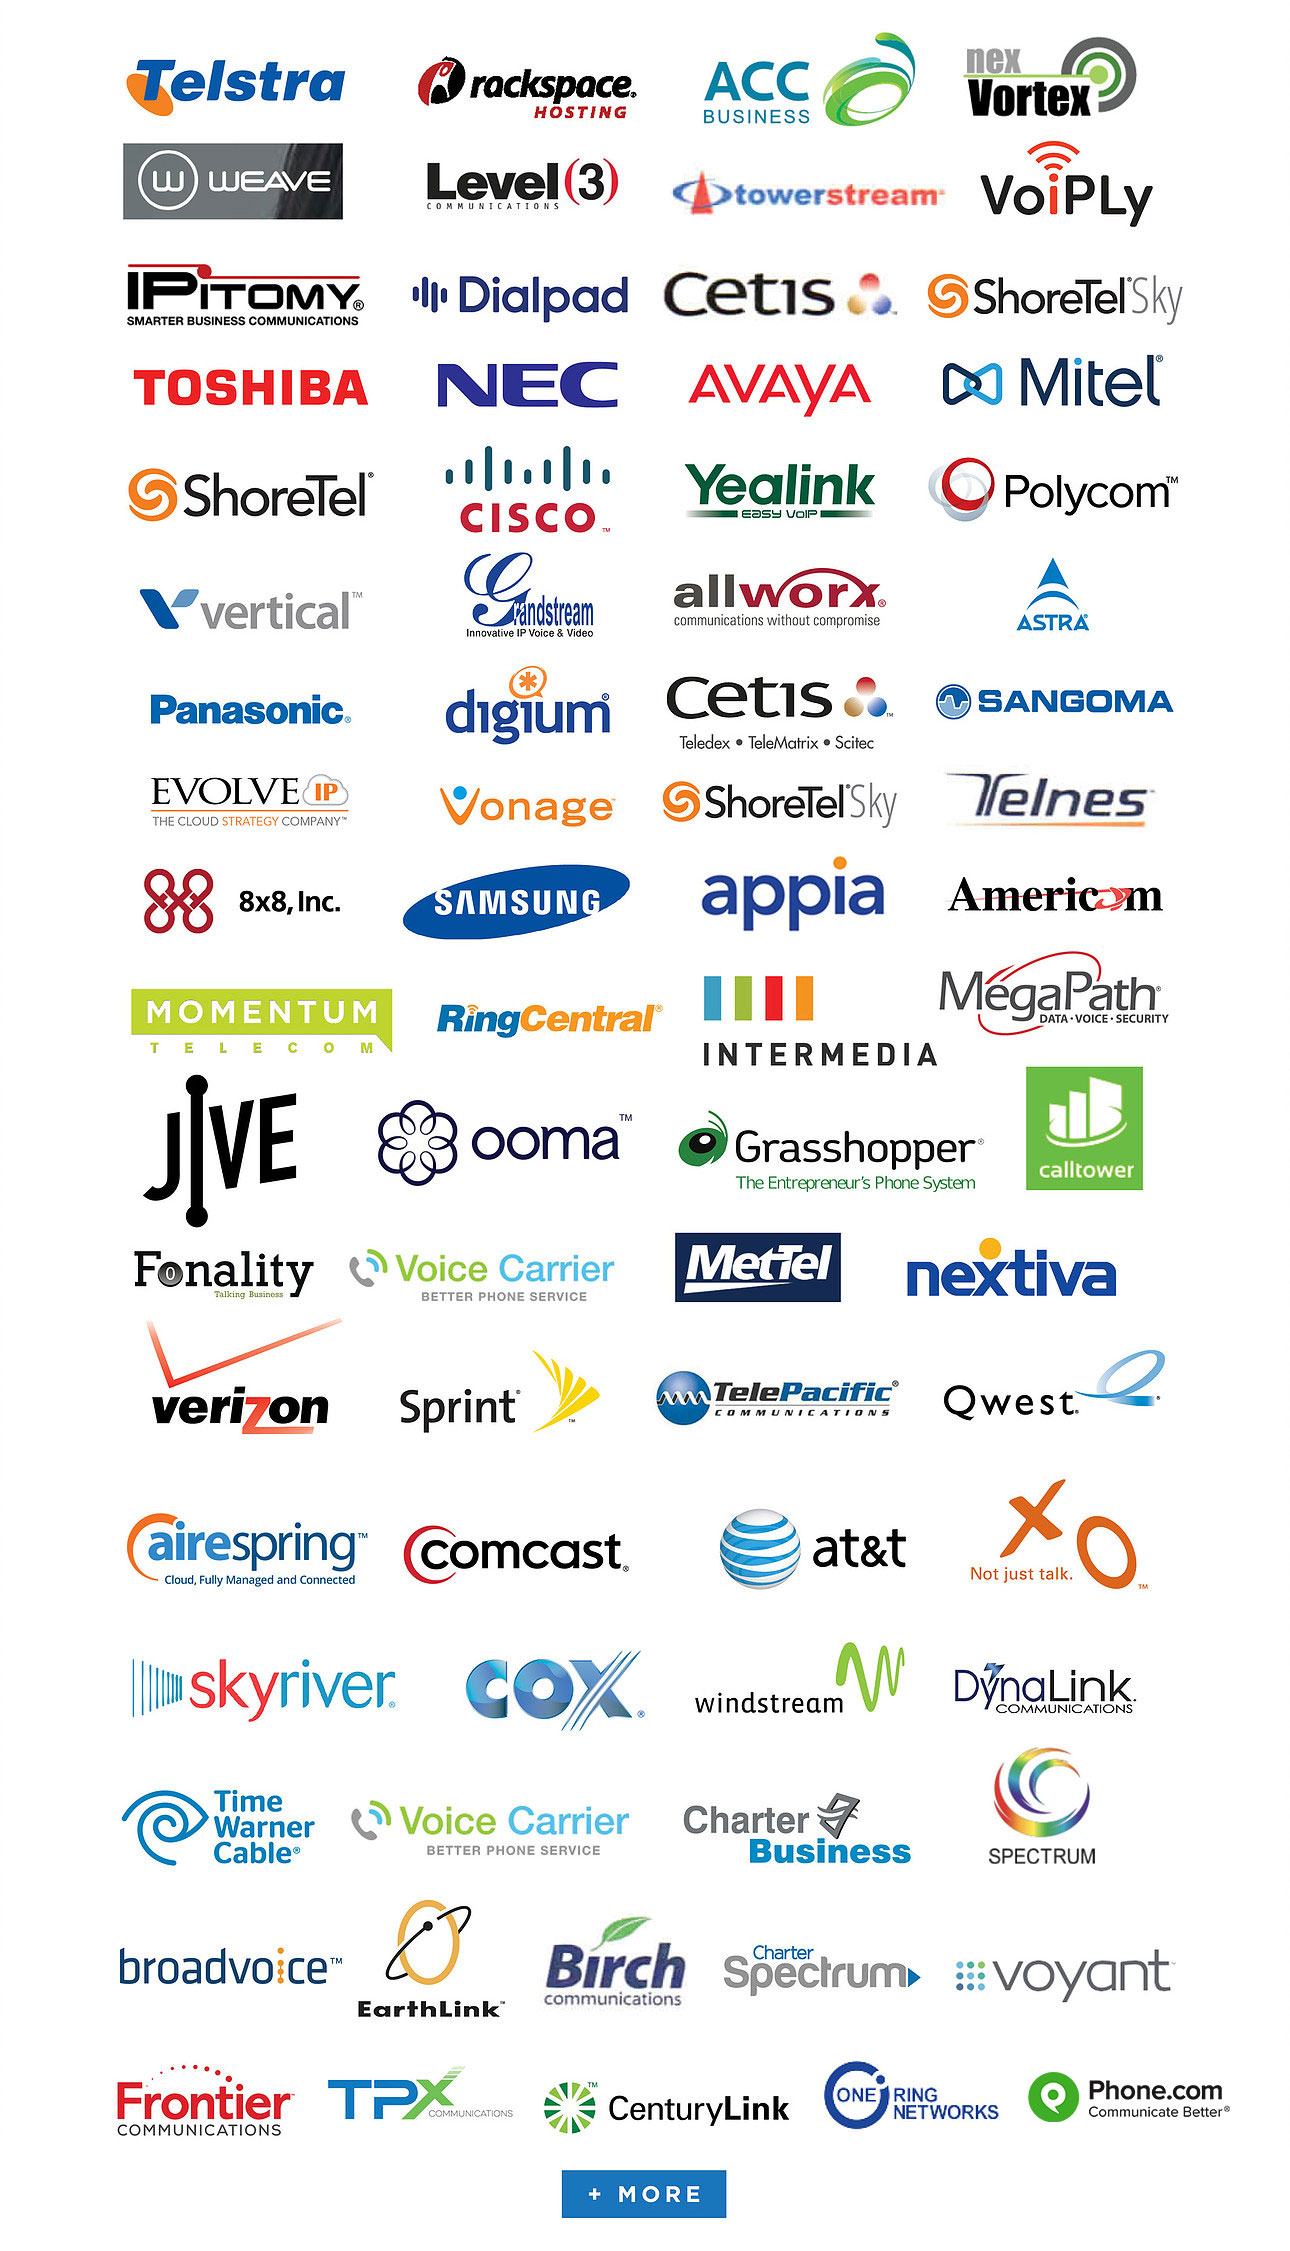 Intellicom partners with multiple organizations to provide the best services for customers